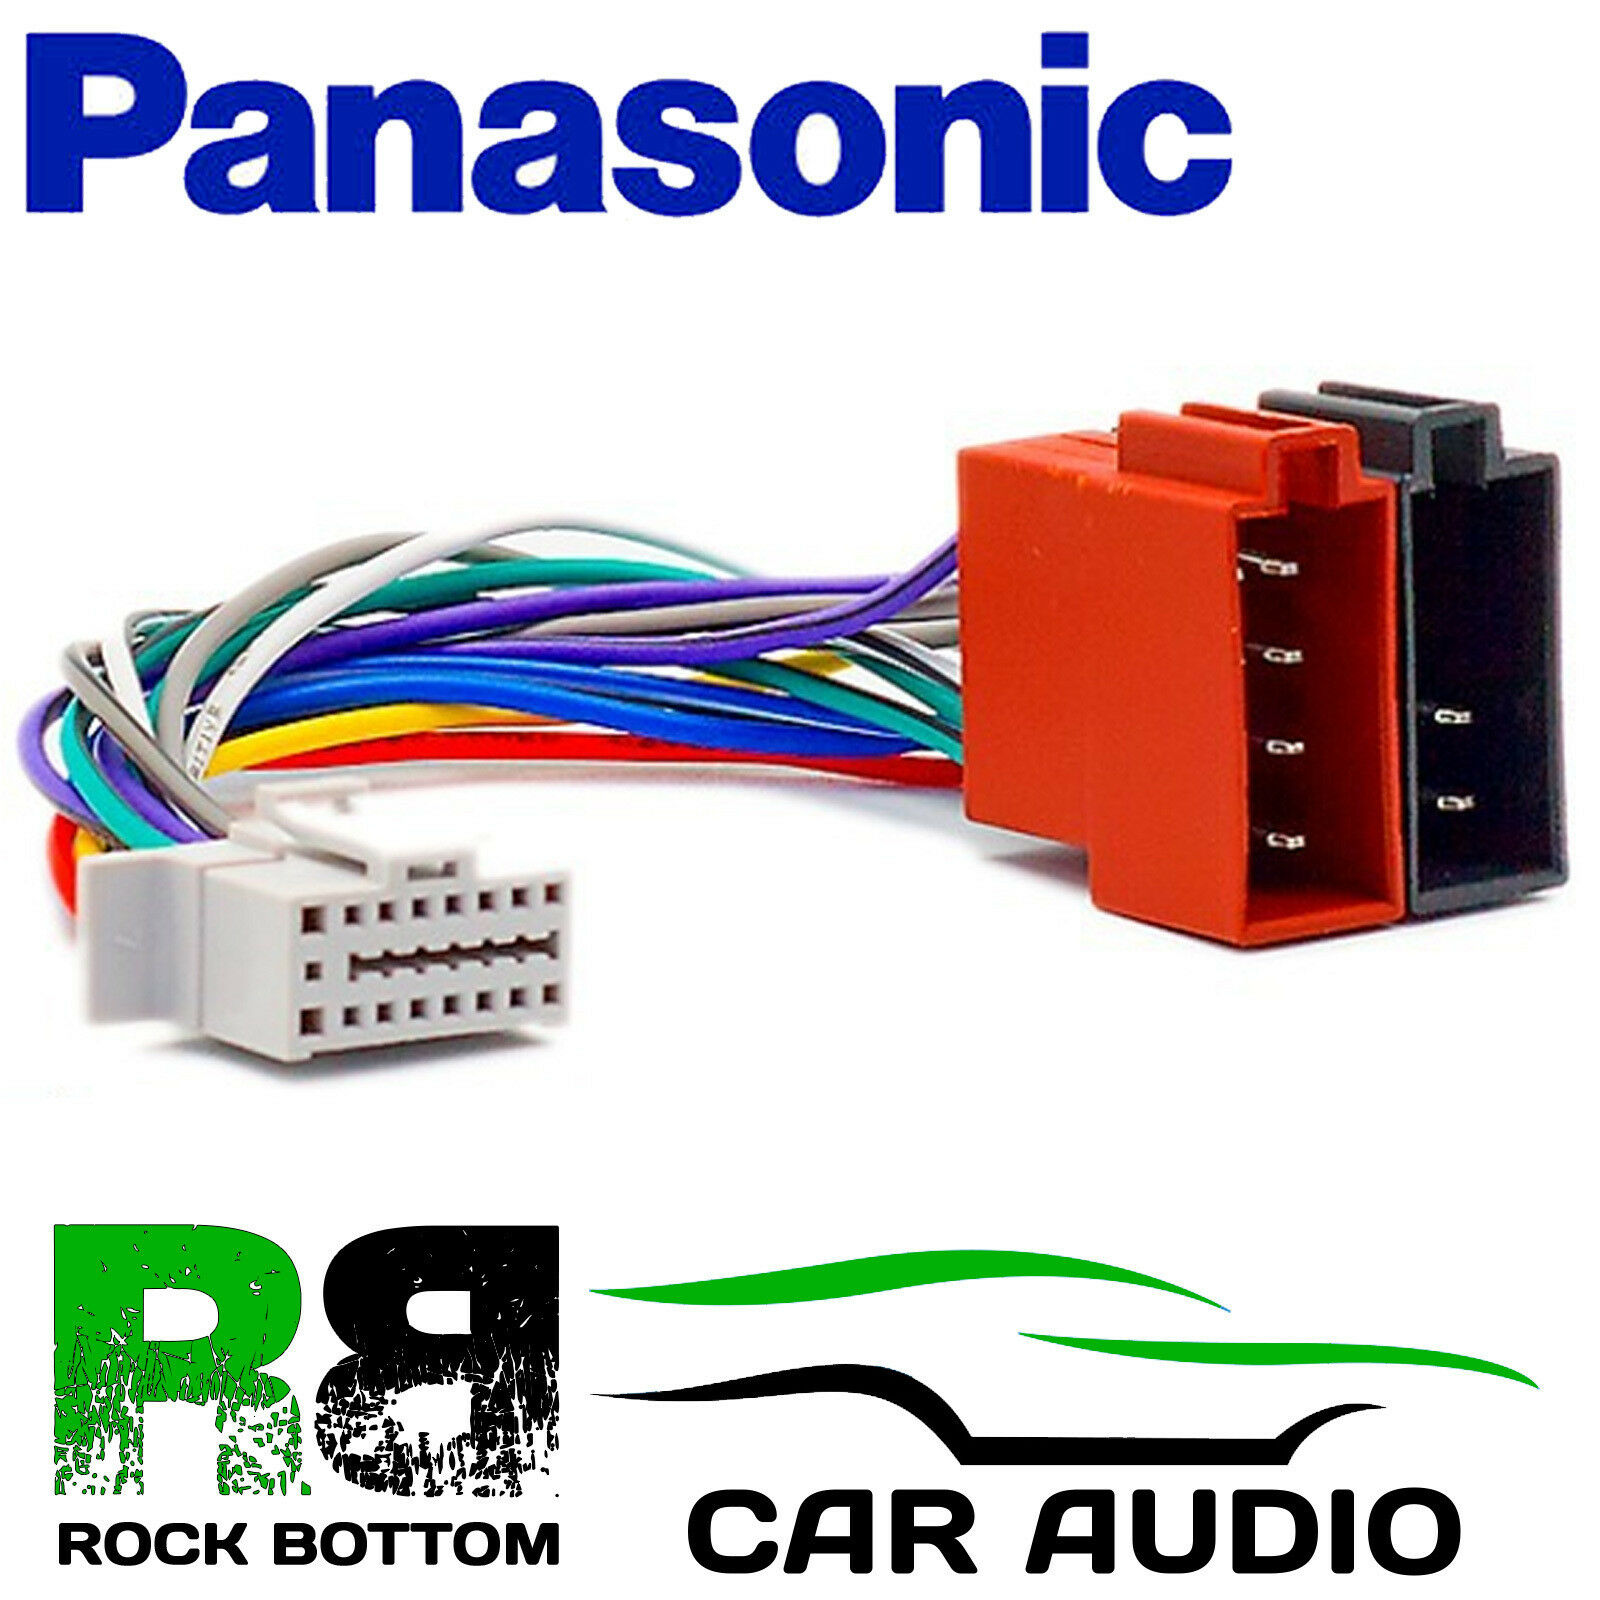 Panasonic Cq C1120 Gn Model 16 Pin Car Stereo Radio Iso Wiring Cd Player Harness Lead 1 Of 1free Shipping See More